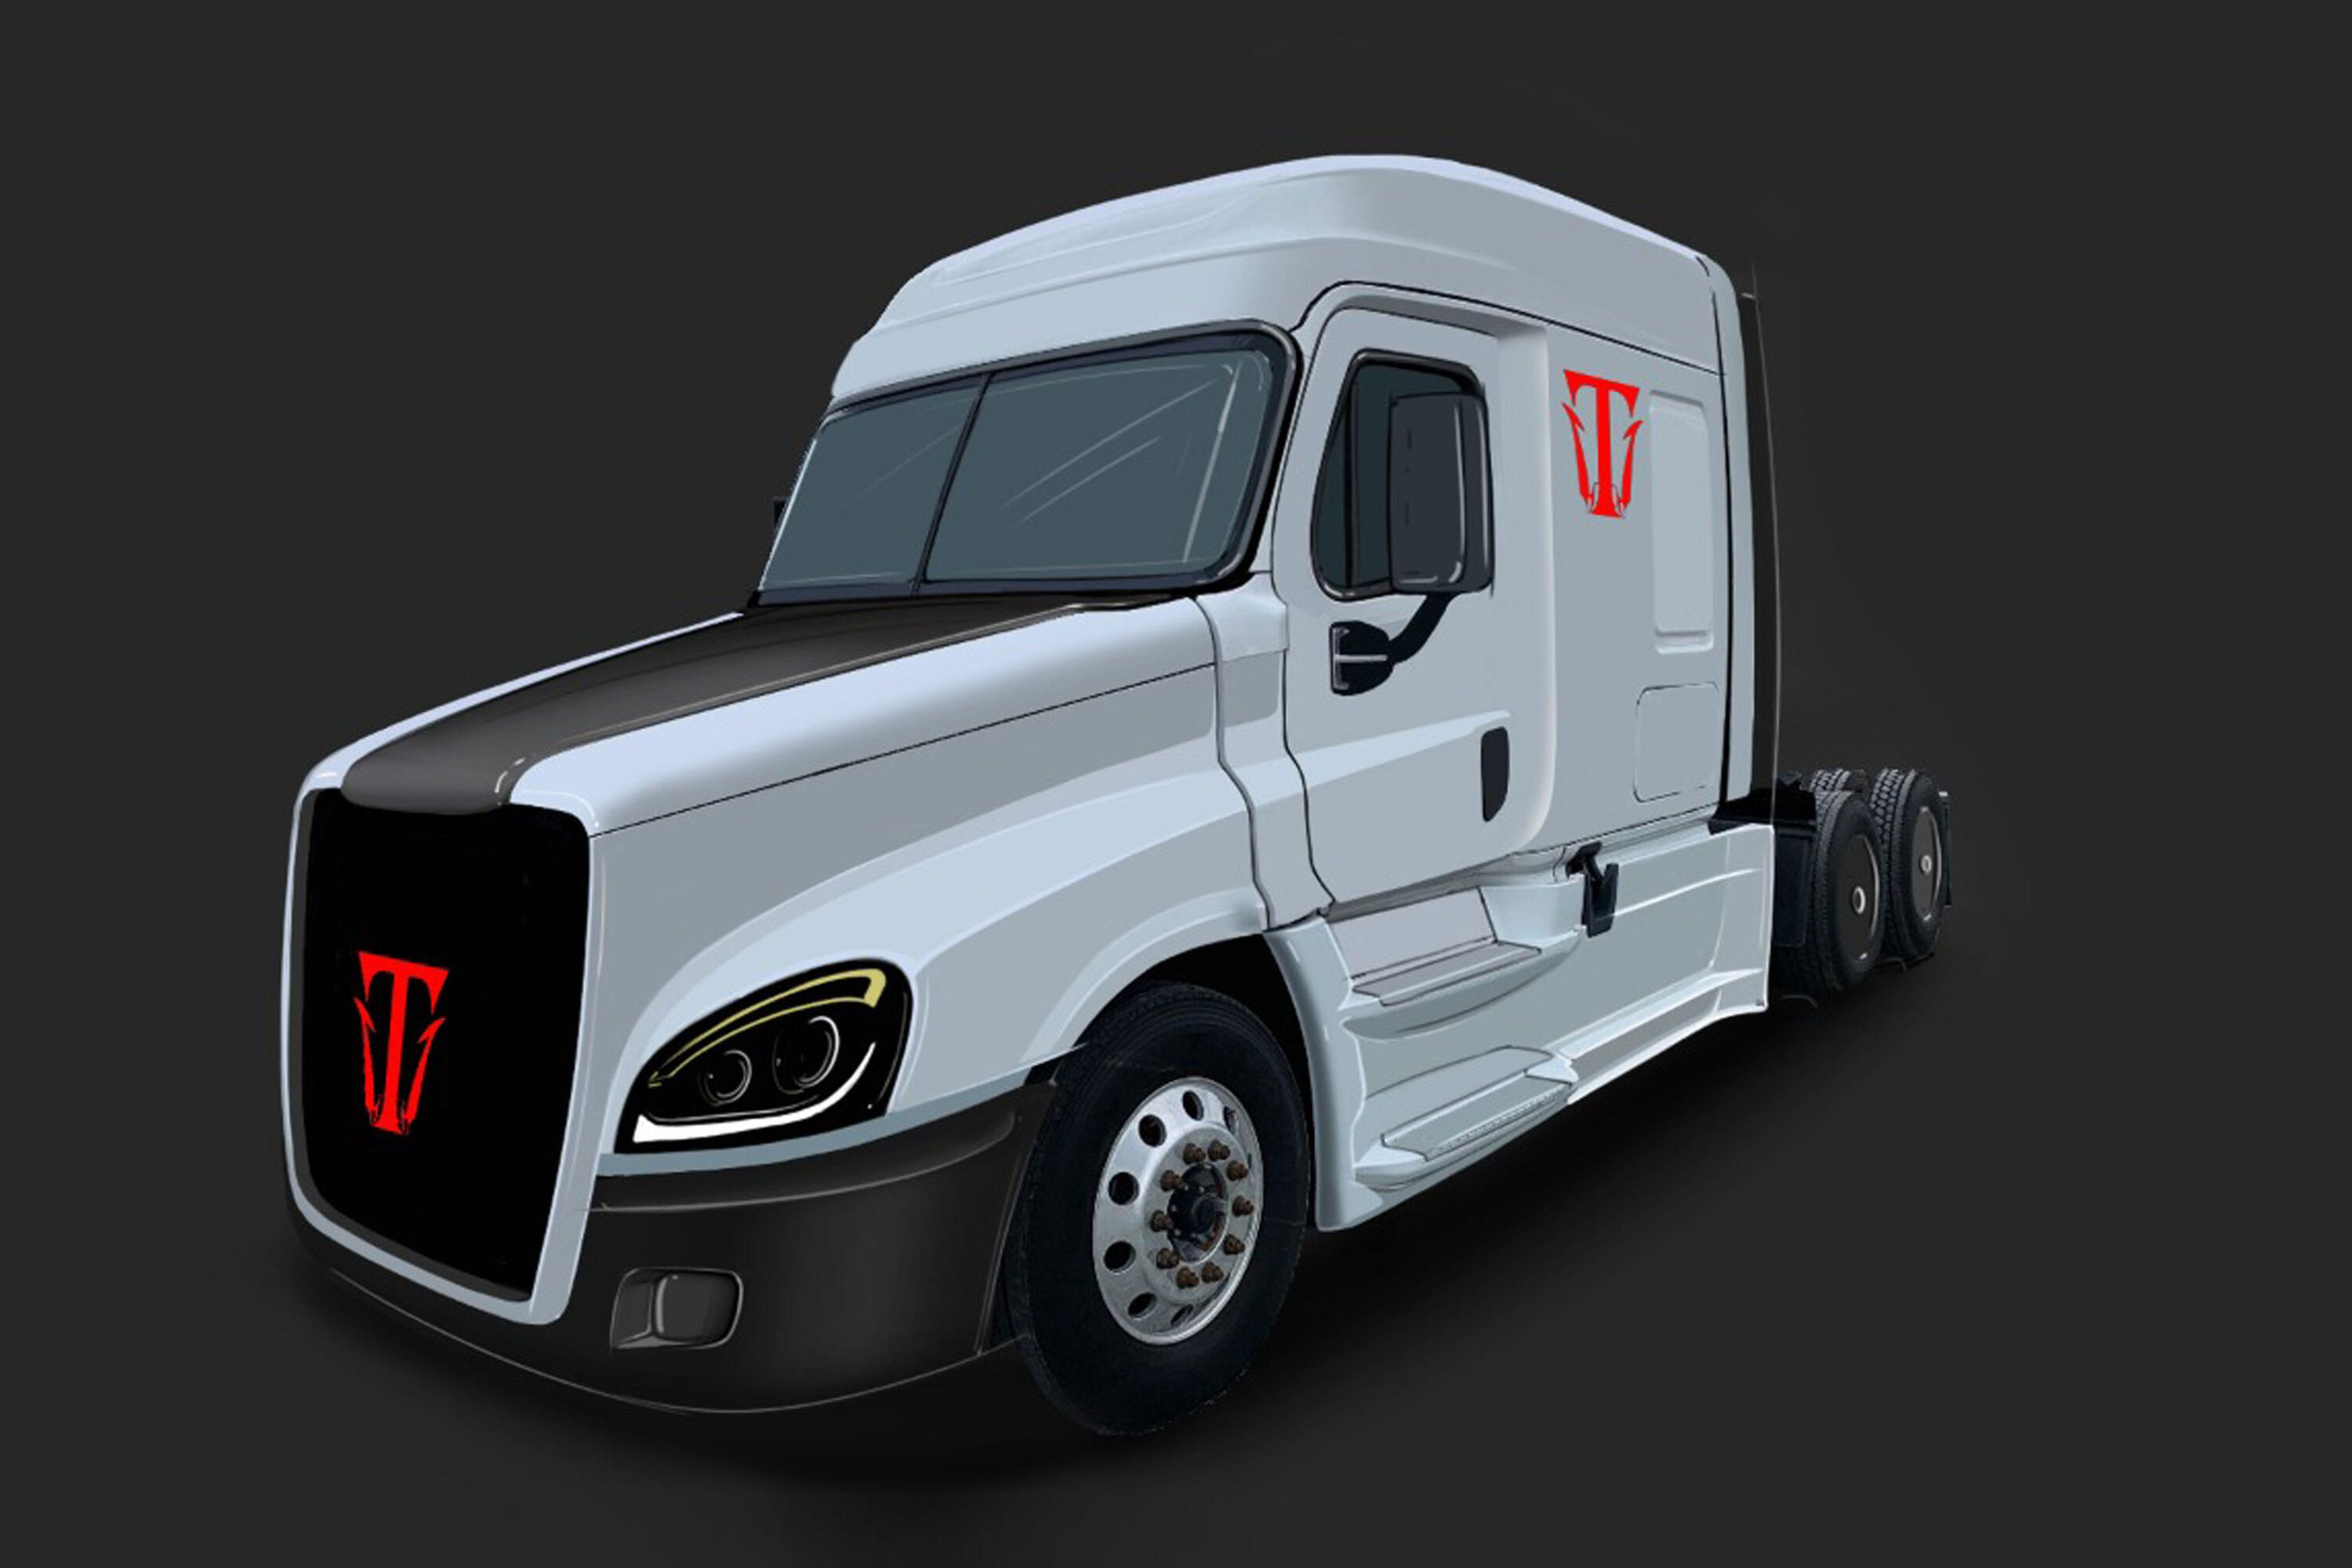 Triton Completes Prototype of Electric Big Rig in 35 Days